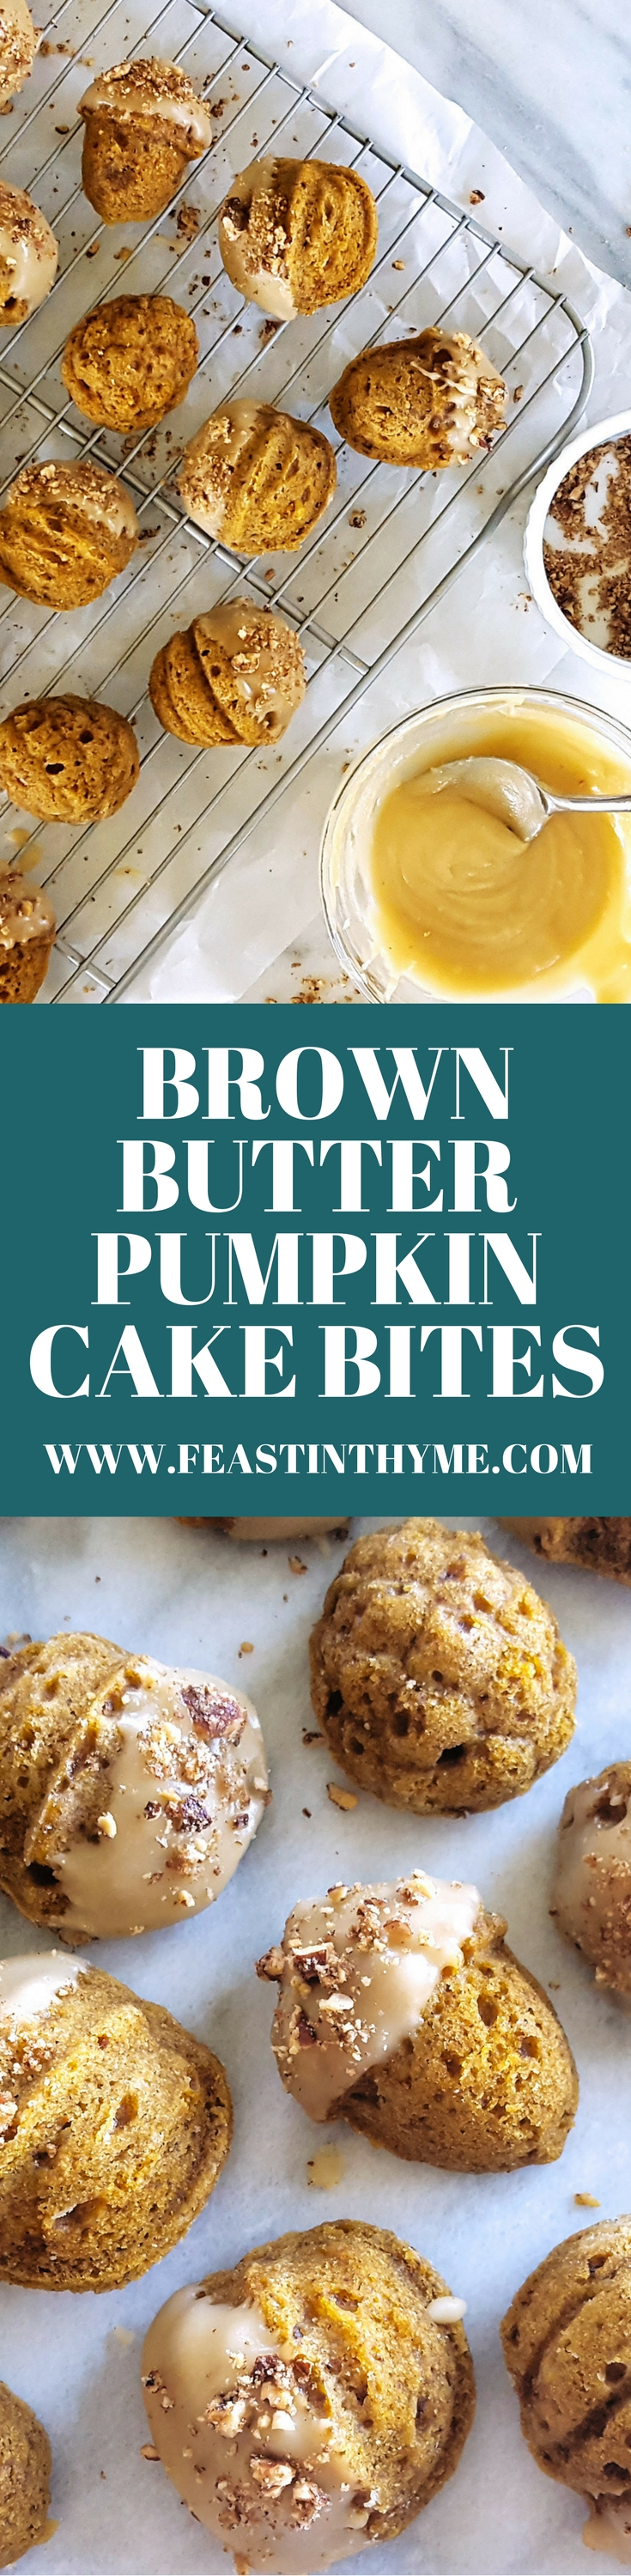 With warm spices, rich maple glaze, & crushed candied pecans, these Brown Butter Pumpkin Cake Bites are a delicious way to impress your guests this fall. | FeastInThyme.com